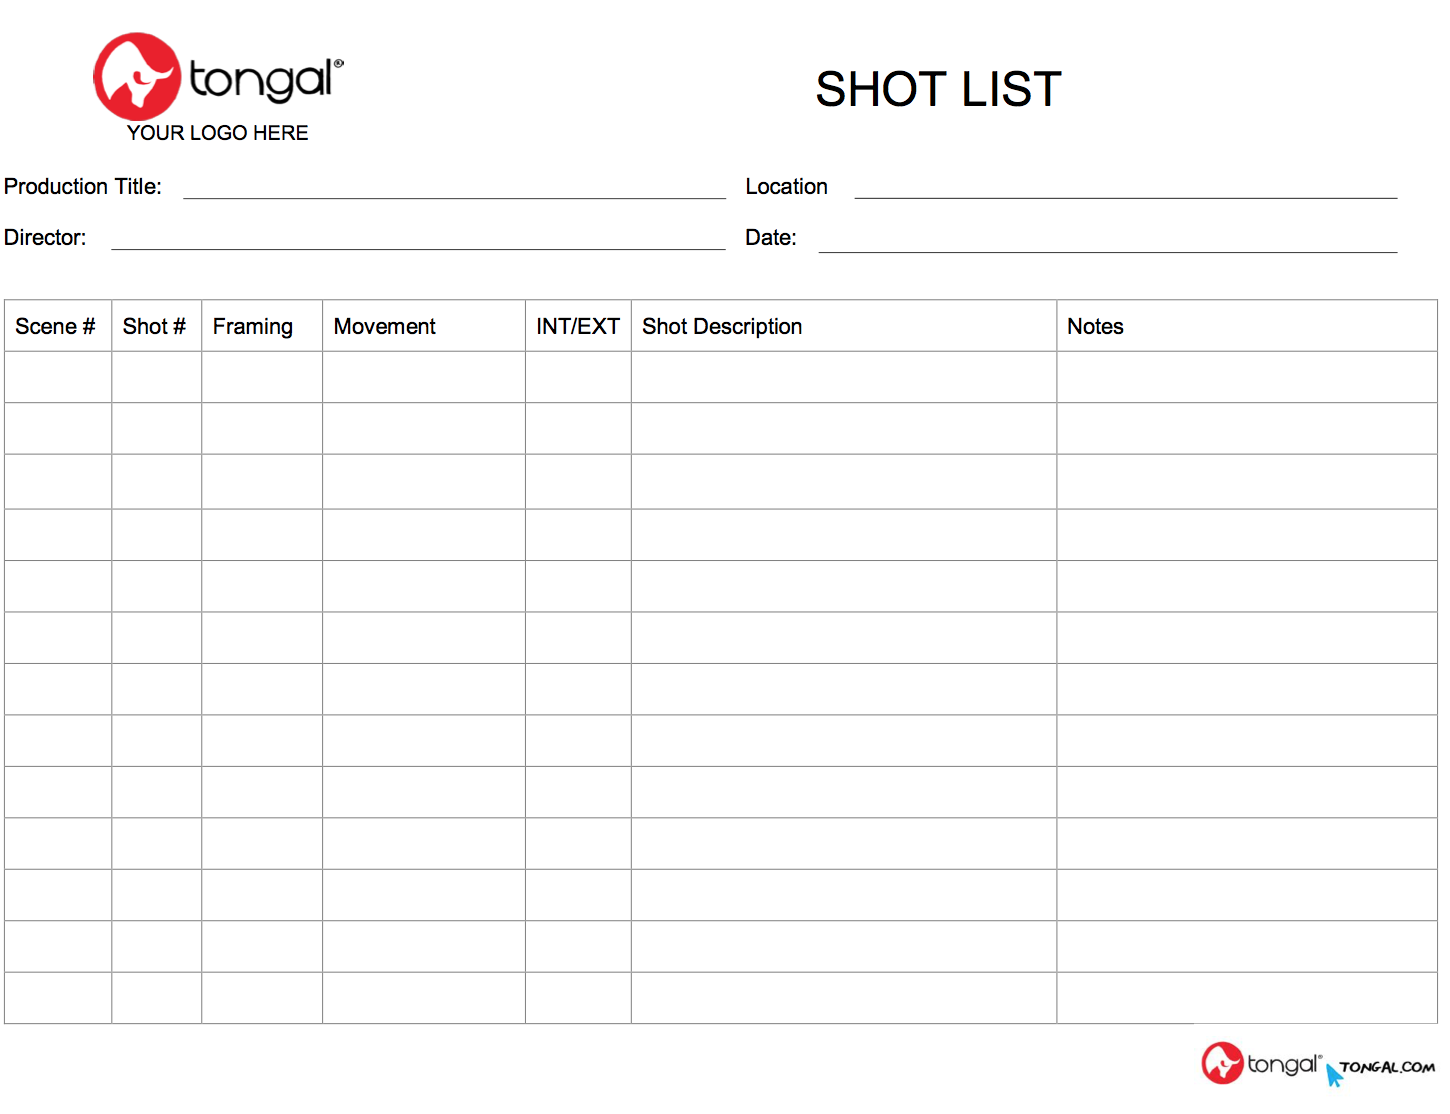 Introducing The Tongal Shot List Template